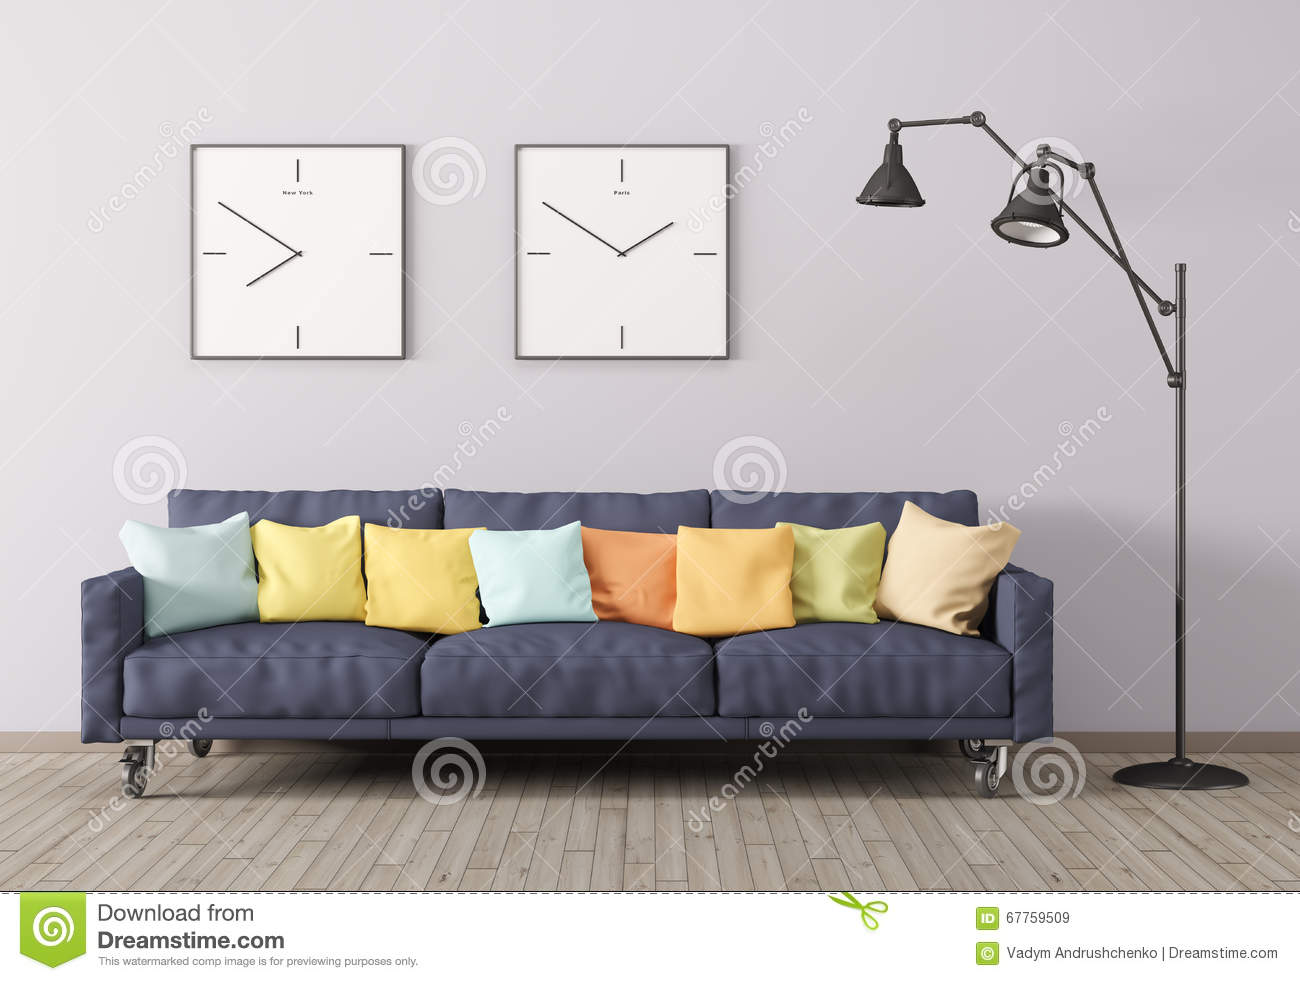 Elegant Modern Interior Of Living Room With Sofa And Floor Lamp 3d Render Stock  Illustration   Illustration Of Render, Minimalism: 67759509